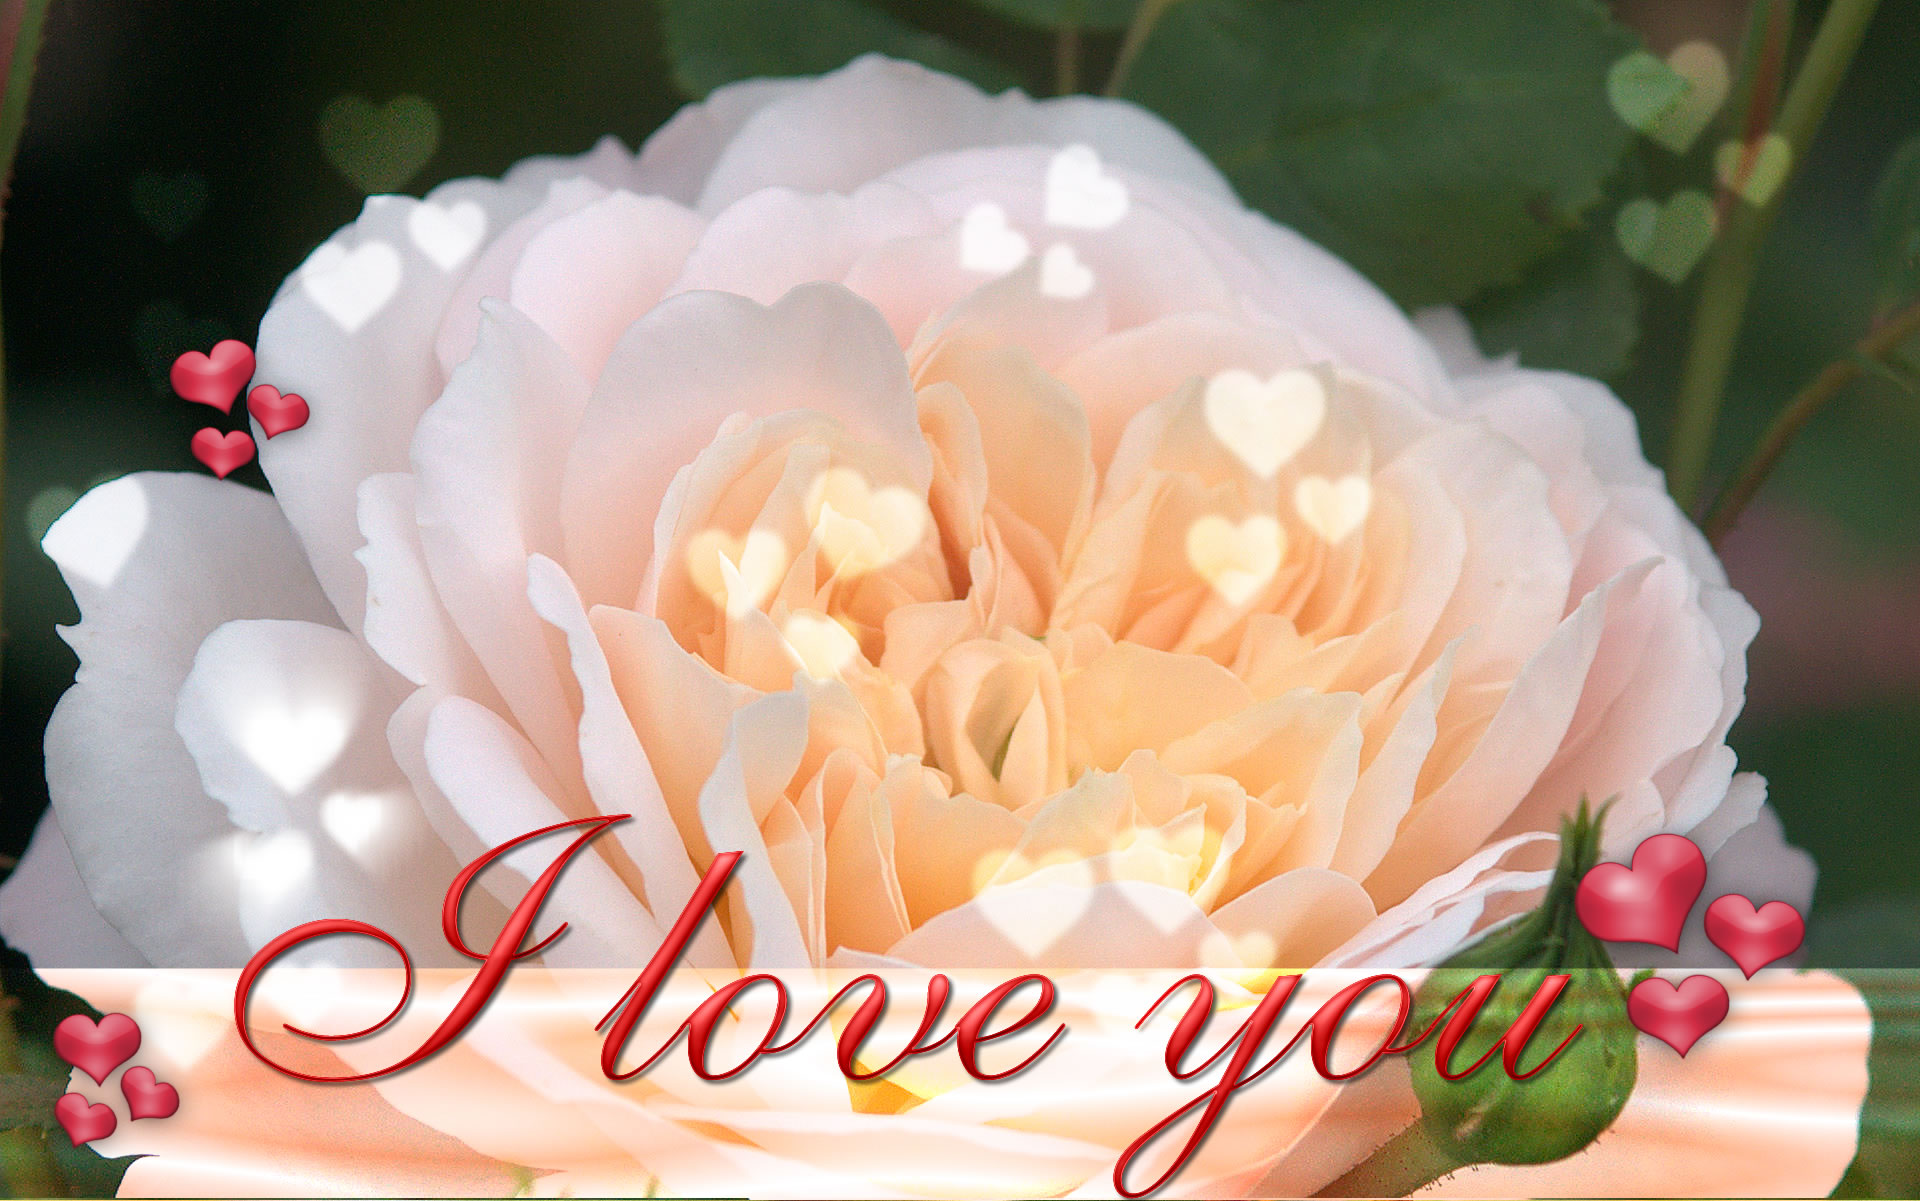 Free Download Or Samsung Galaxy Just Press And Select As Wallpaper Or Save 1920x1201 For Your Desktop Mobile Tablet Explore 74 I Love You Background Valentine Wallpapers For Desktop